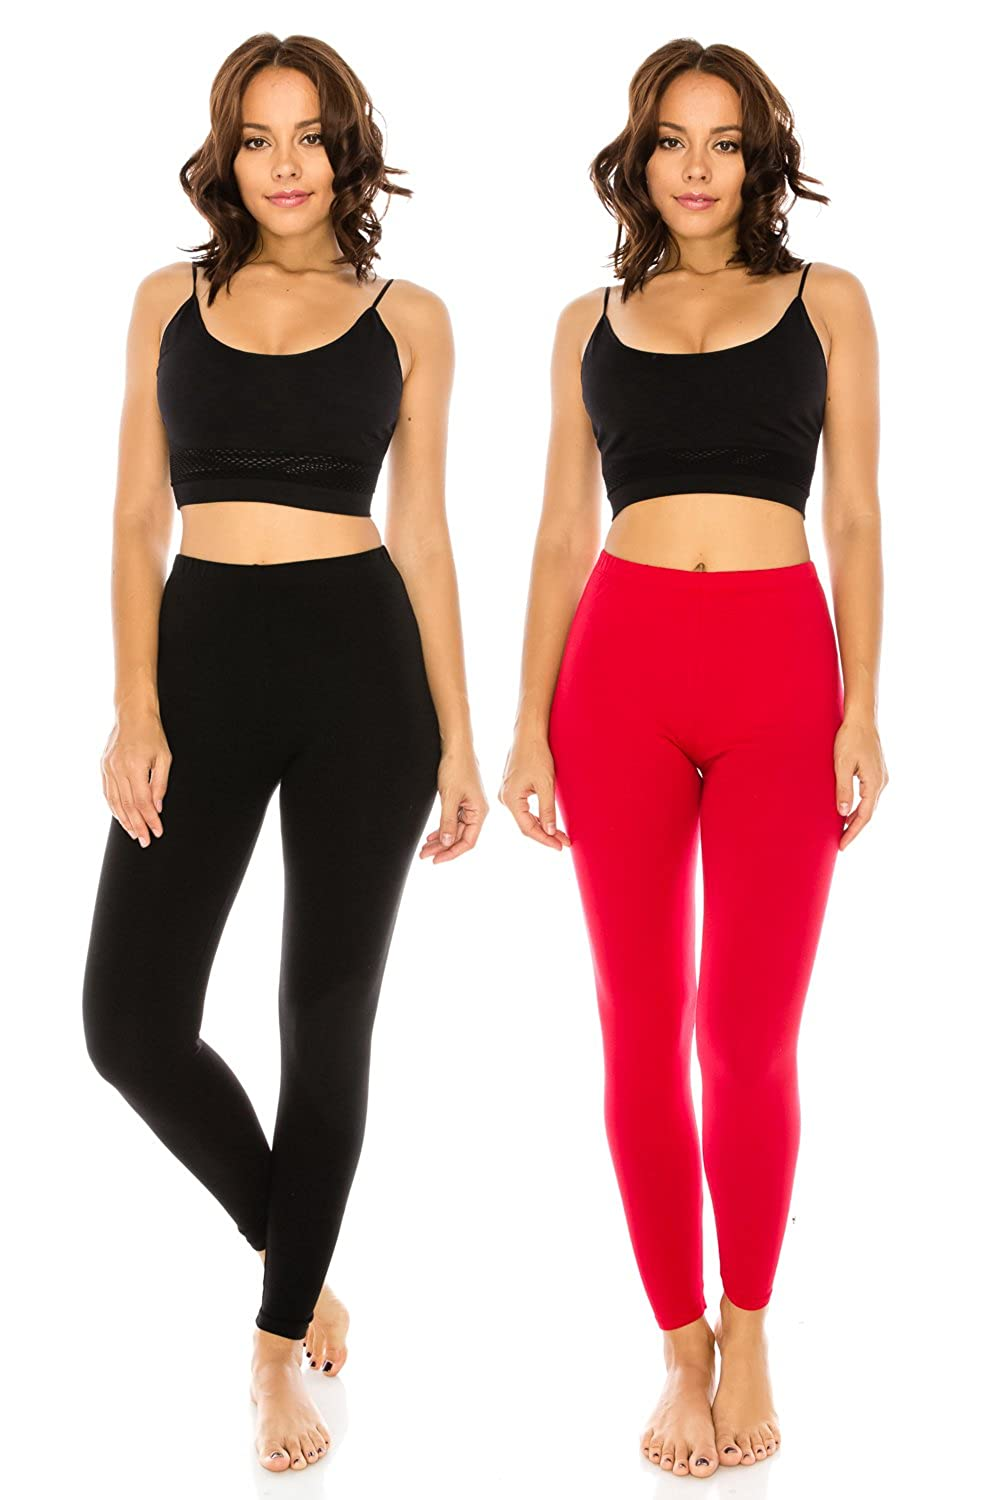 Blkred The Classic Women's Stretch Jersey Sports Yoga Full Length Leggings Pants